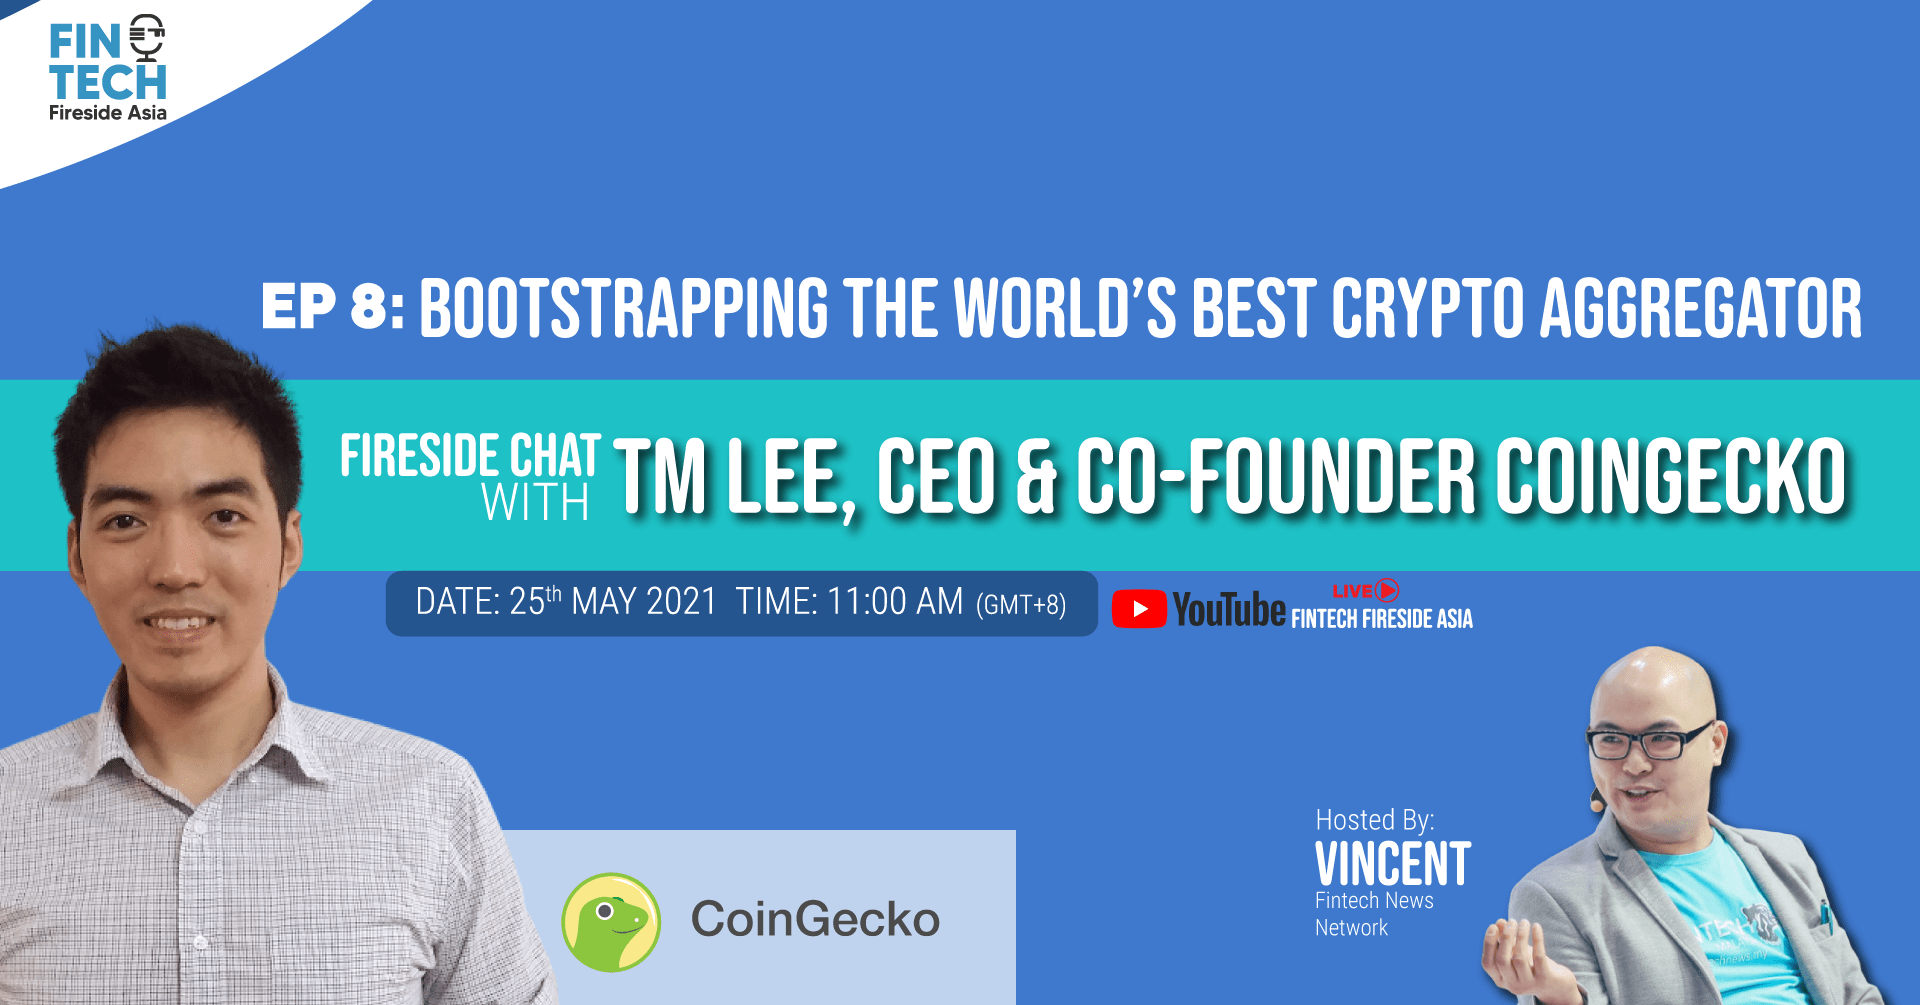 Bootstrapping the World's Best Crypto Aggregator ft. TM Lee, Co-Founder CoinGecko